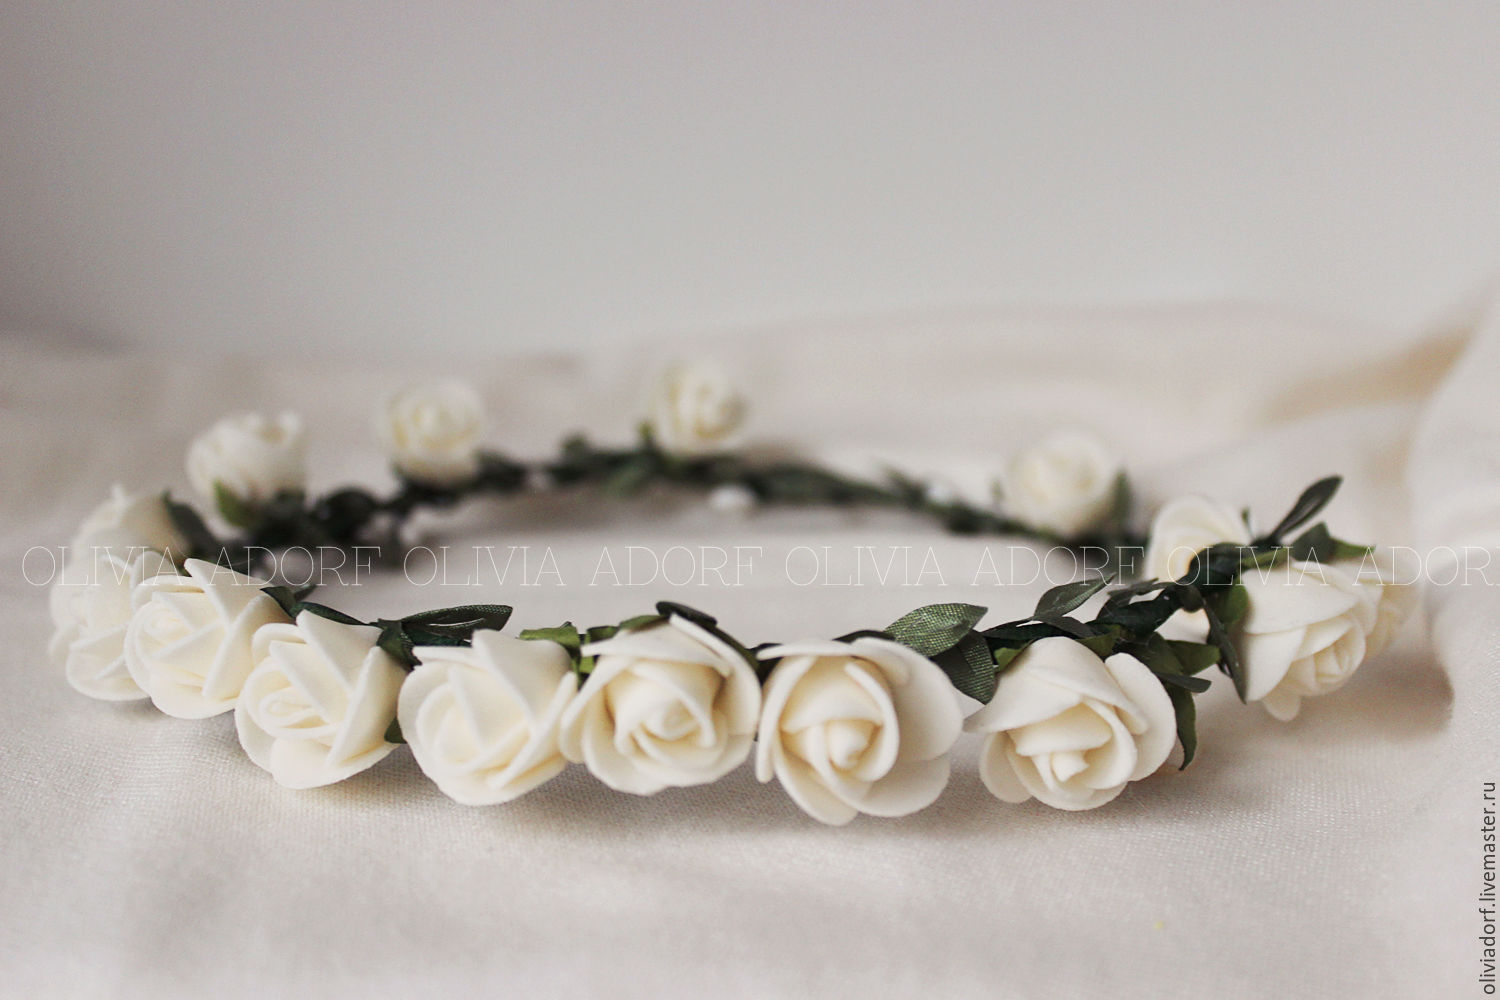 Flower crown with white roses bianca s23 shop online on buy flower crown with white roses bianca s23 izmirmasajfo